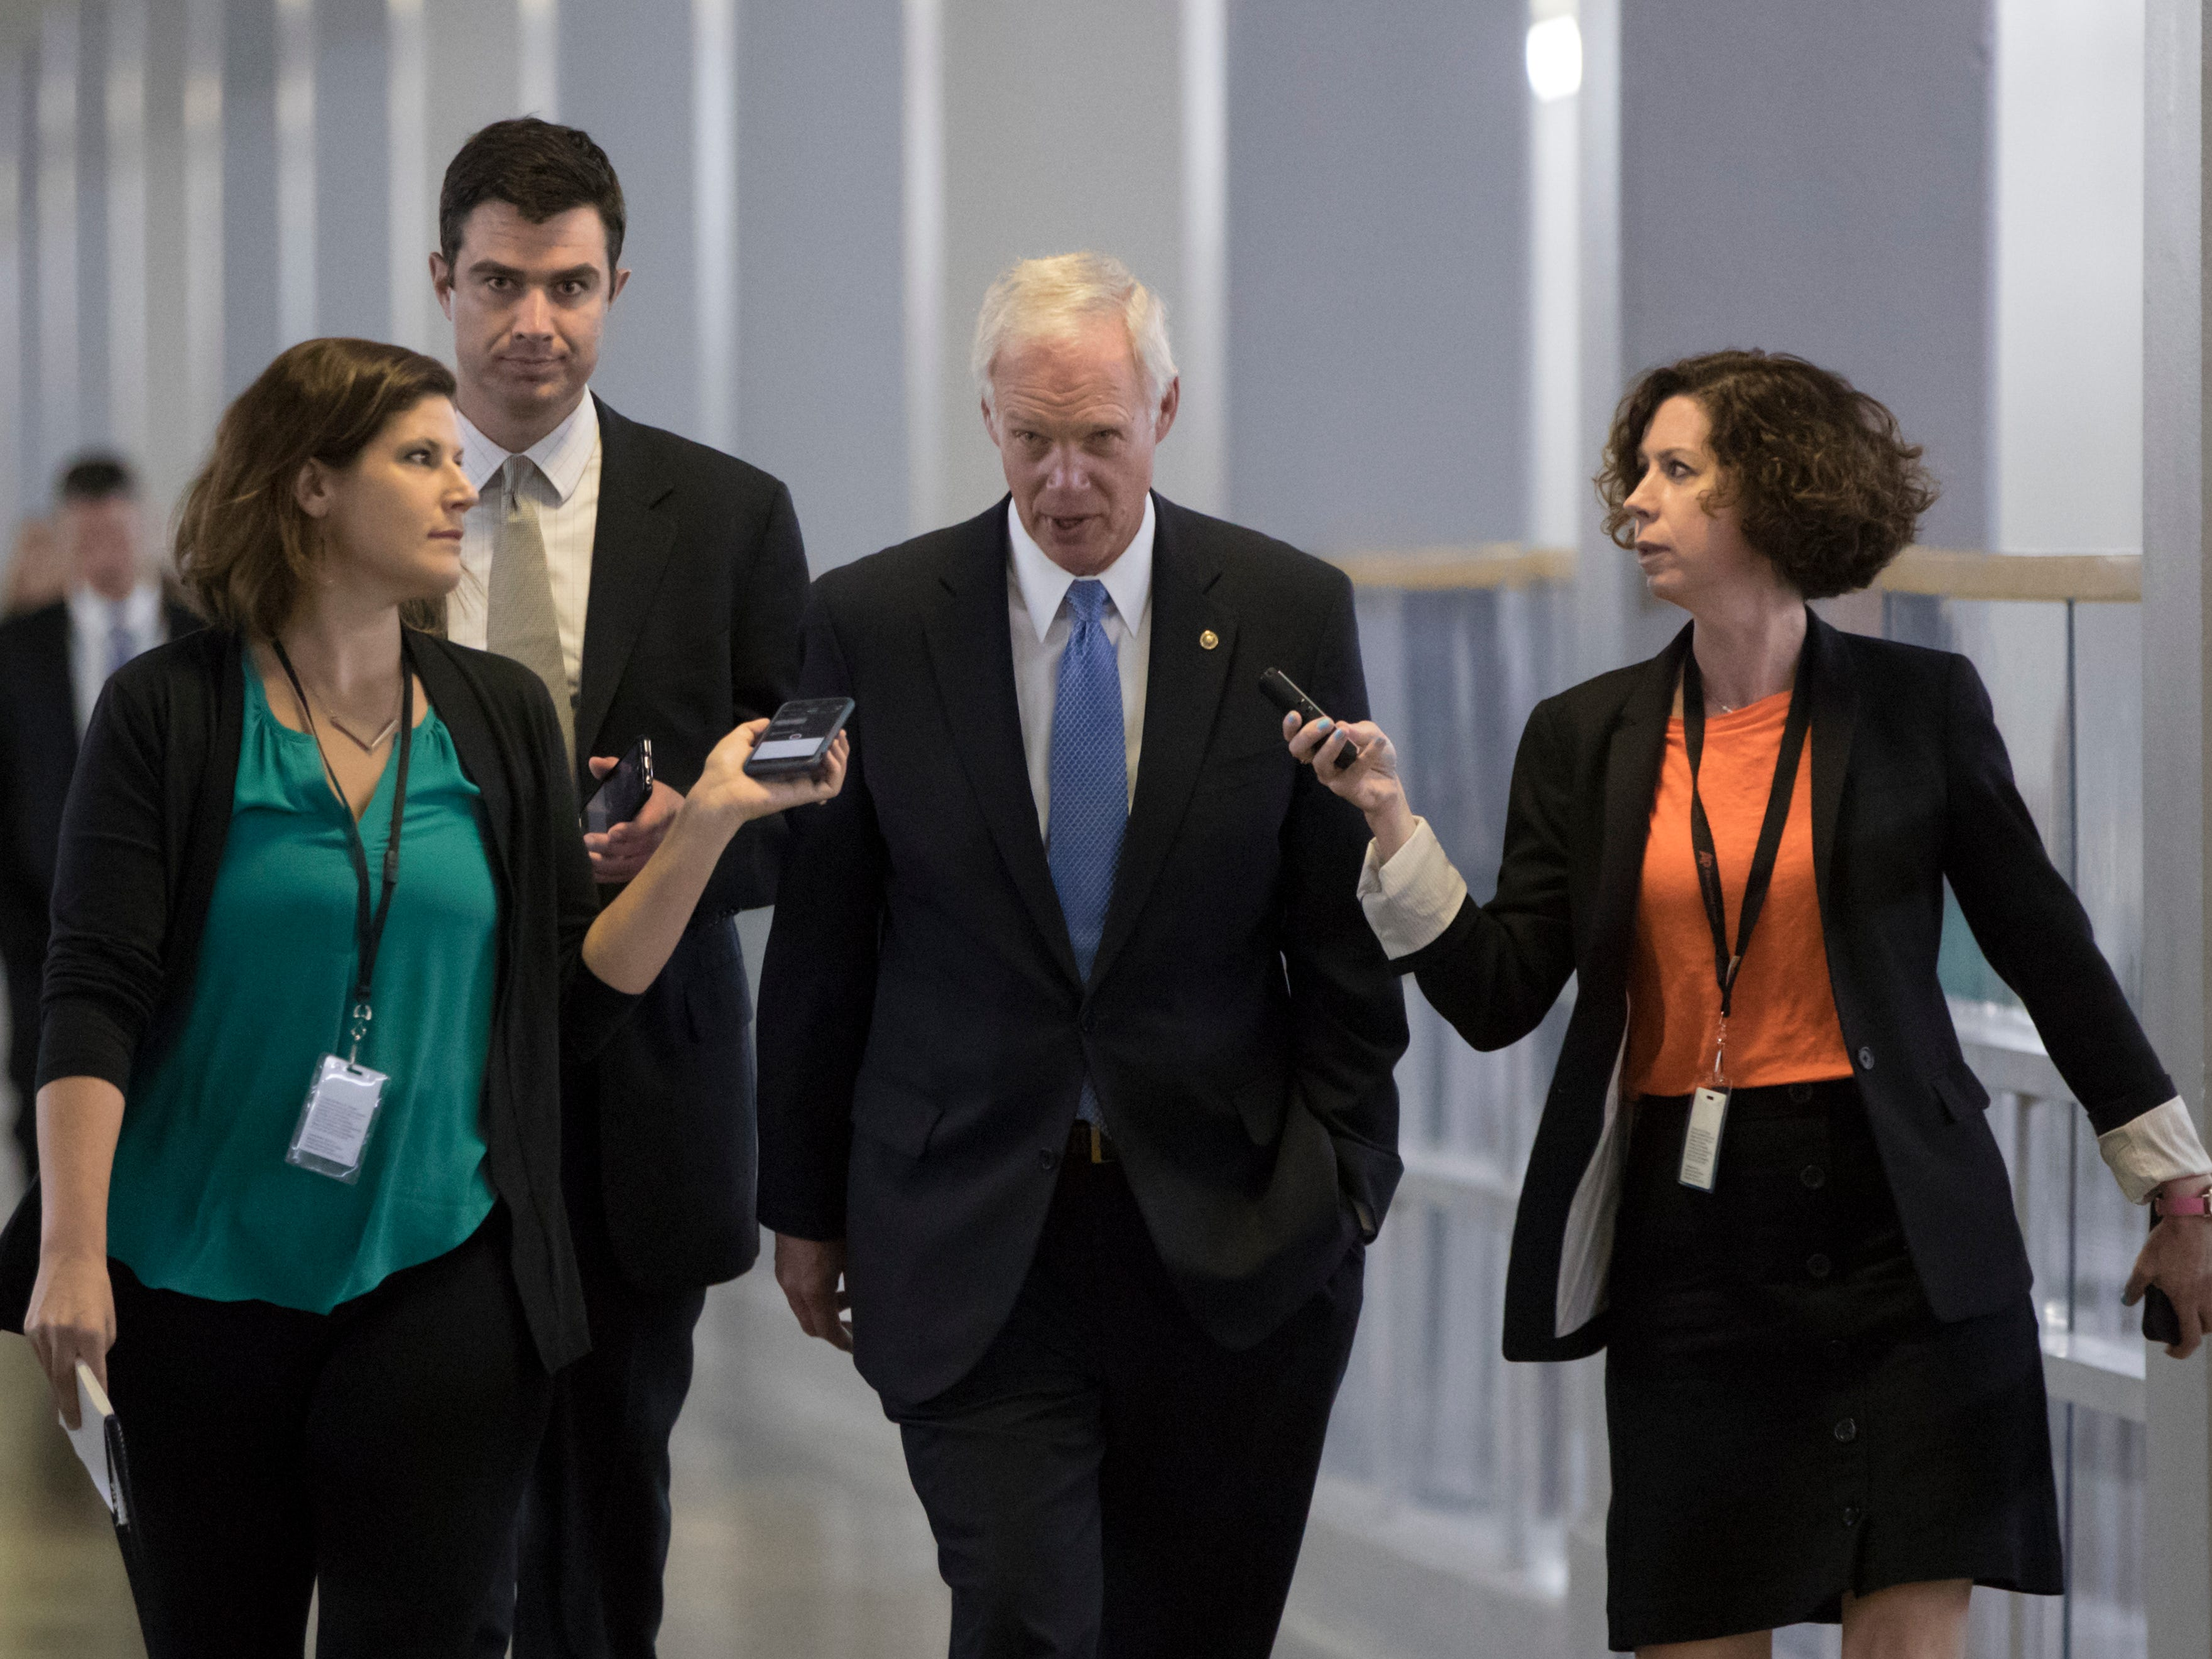 Sen. Ron Johnson, R-Wisc., center, who has expressed opposition to his own party's health care bill, walks to a policy meeting as the Senate Republican legislation teeters on the brink of collapse, at the Capitol.